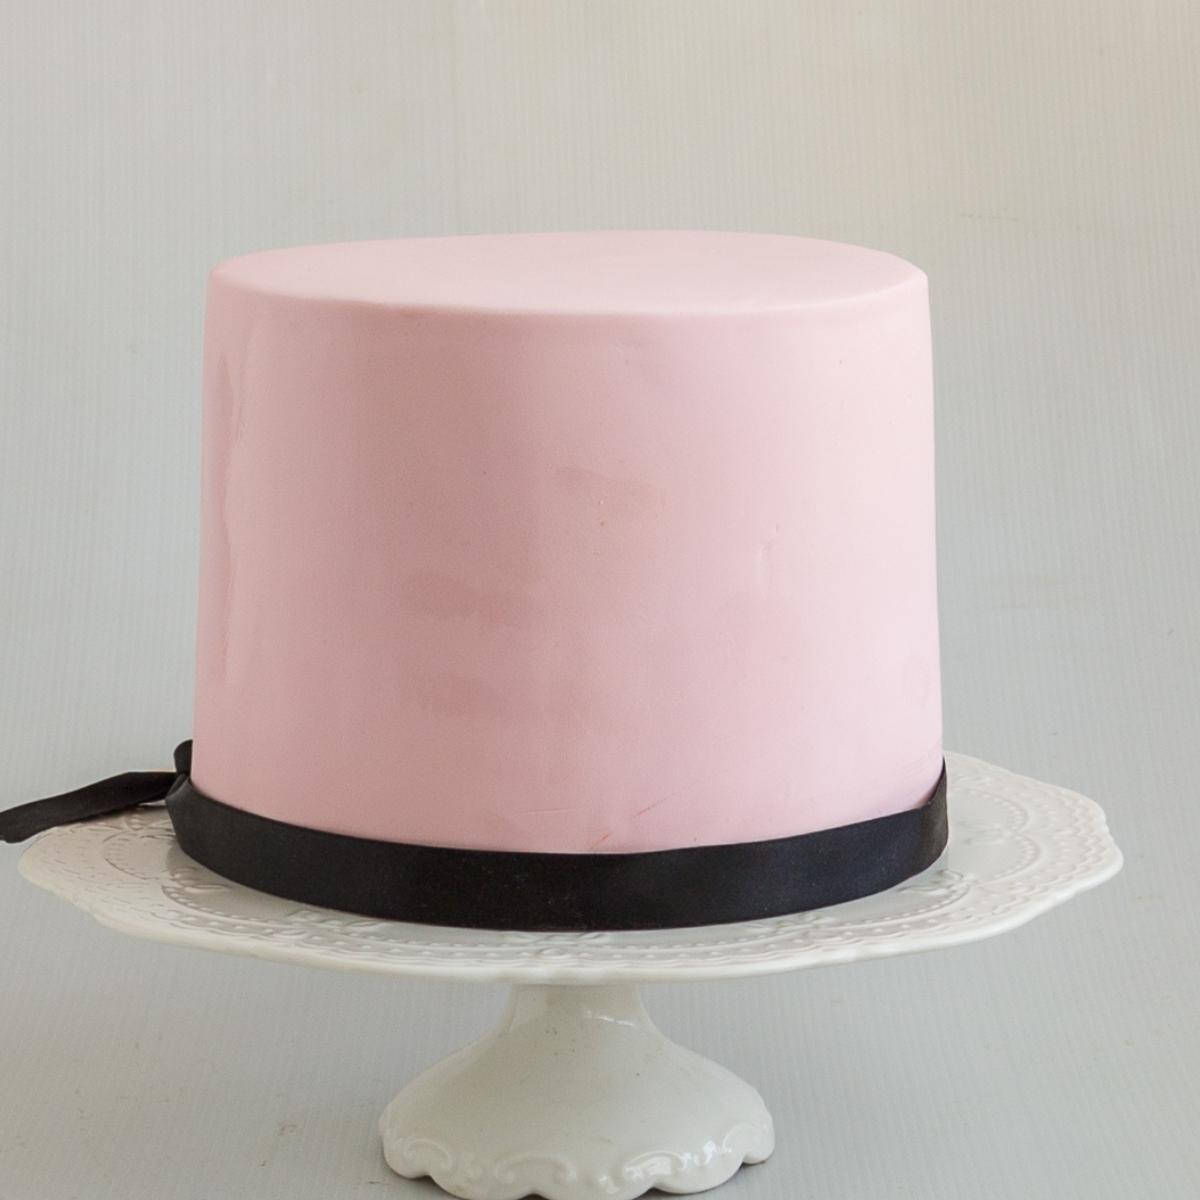 A cake decorated with pink fondant.